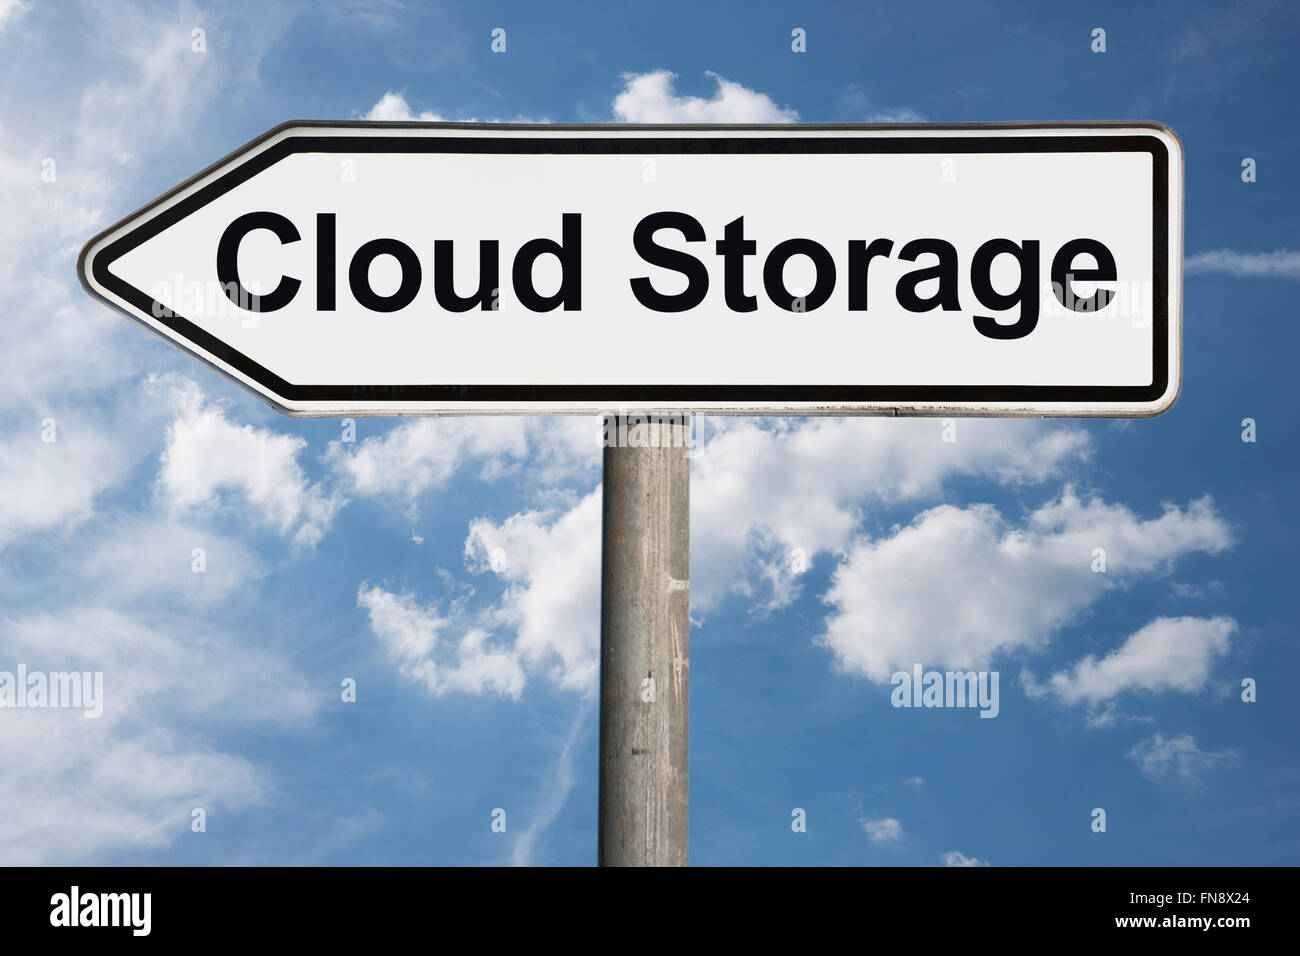 Detail photo of a signpost with the title Cloud Storage - Stock Image